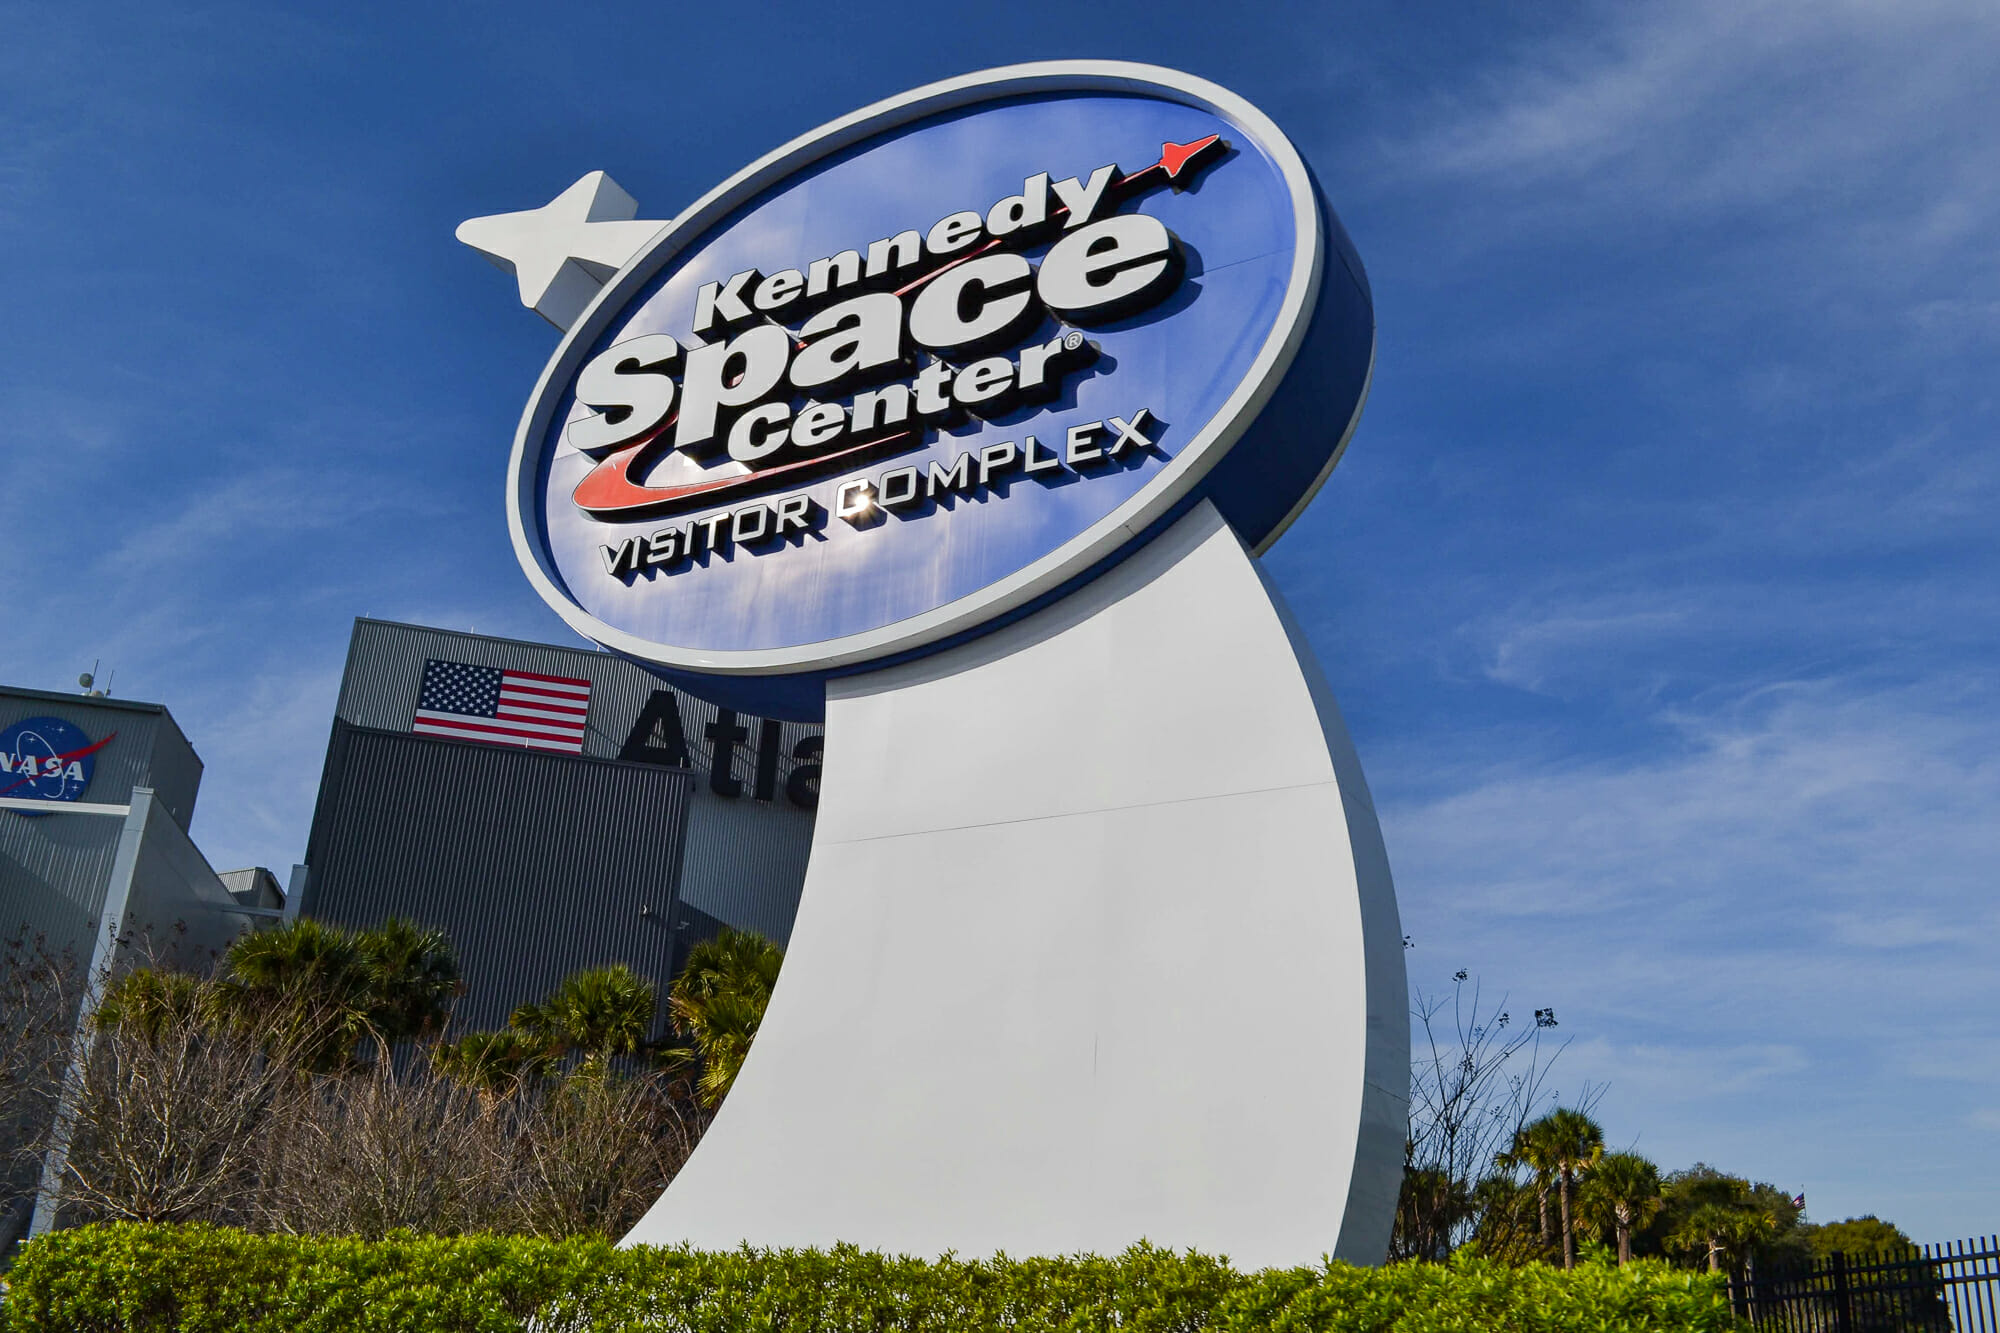 Foto da placa na entrada do Kennedy Space Center, que tem o logo do local e um foguete branco ao lado.